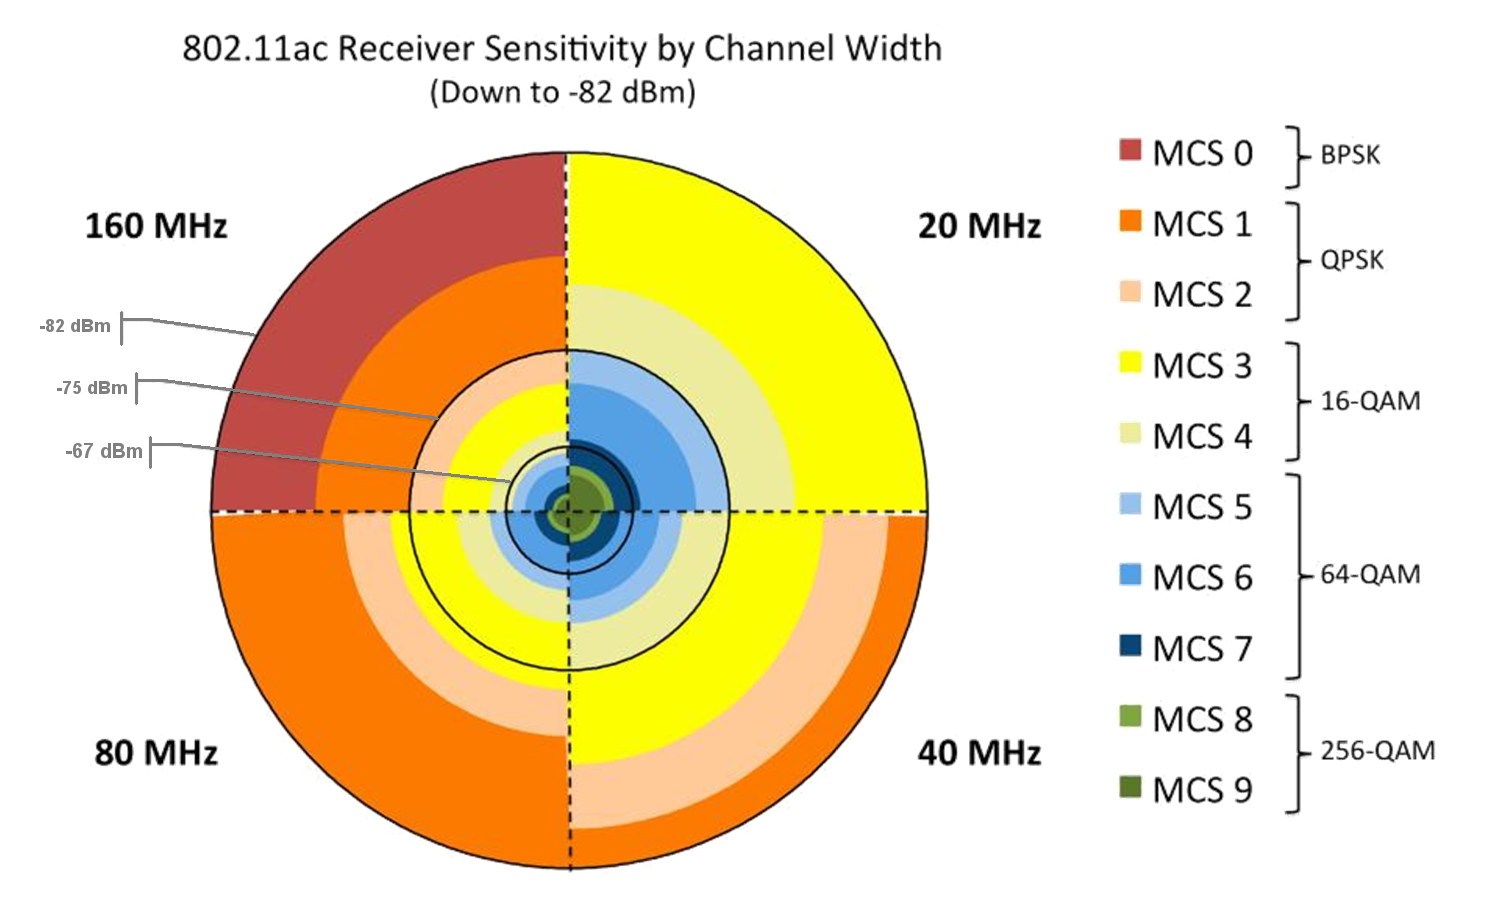 802.11ac Receiver Sensitivity